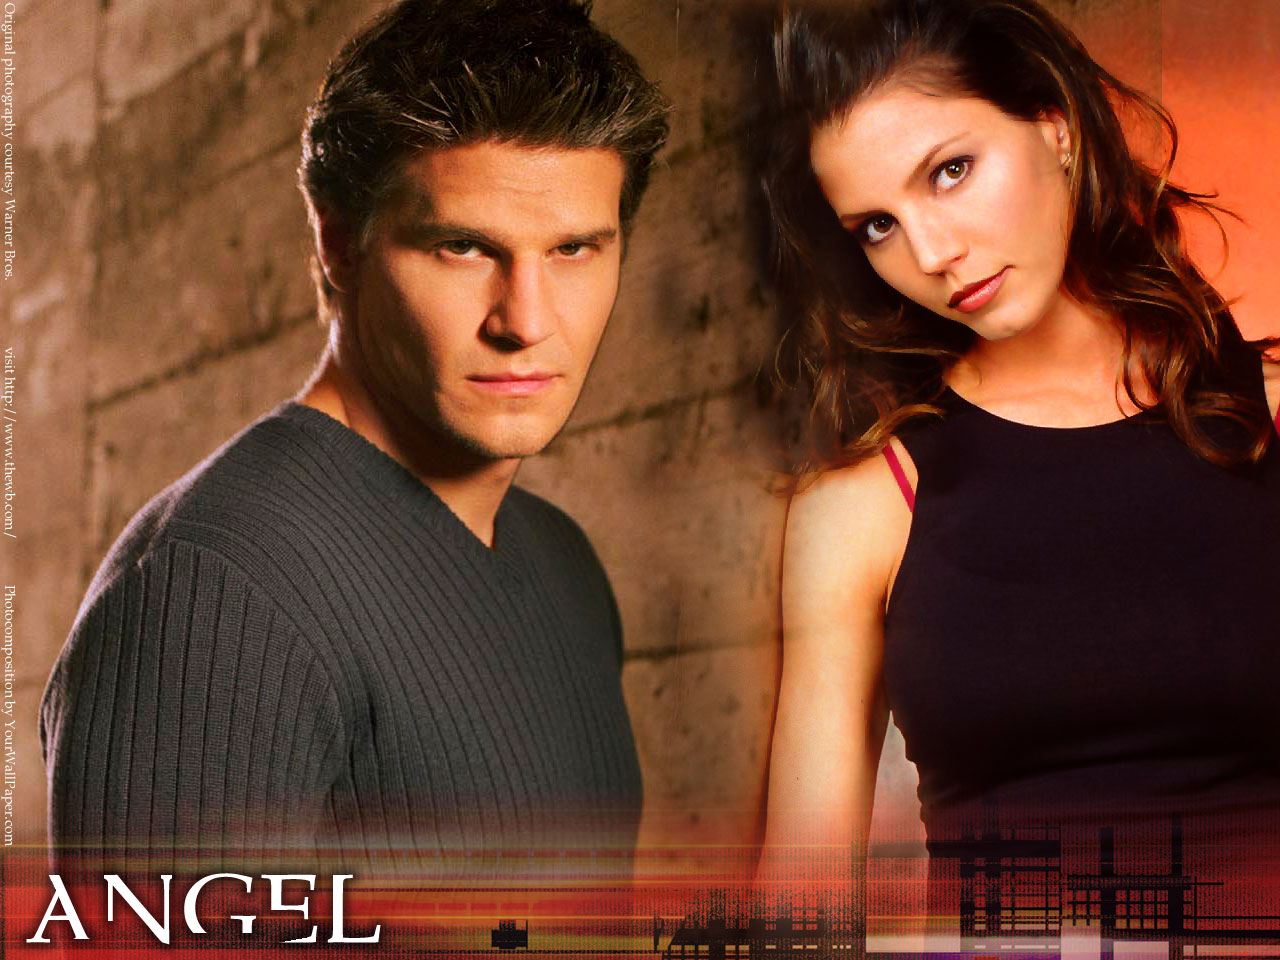 and chrisma carpenter as angel and cordelia from the tv show angel 1280x960